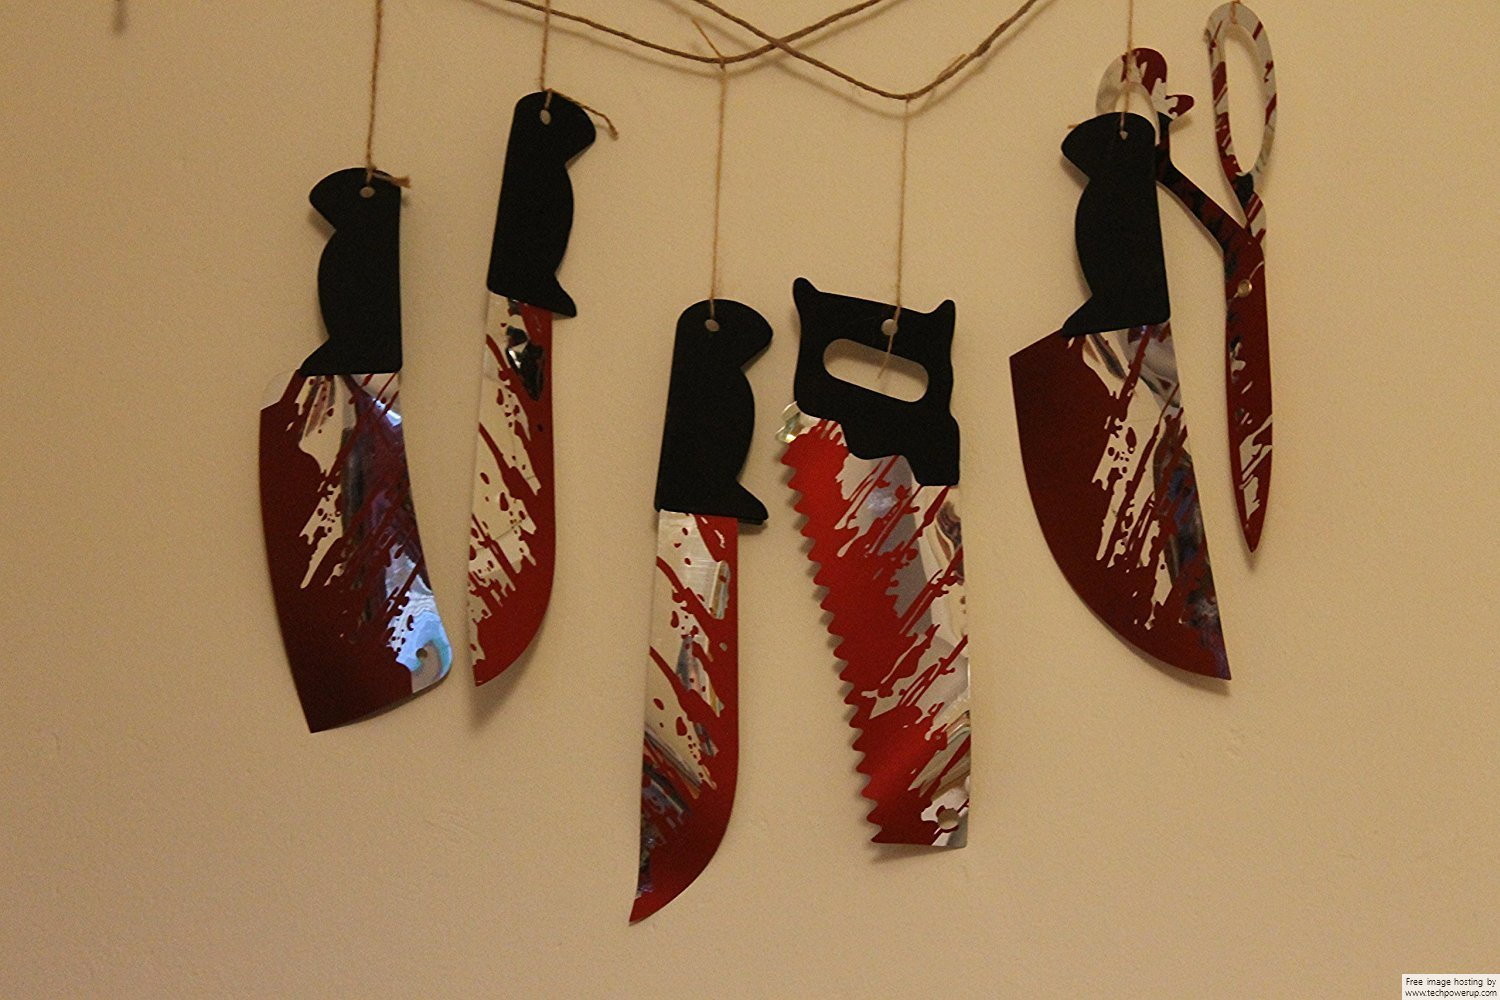 1.8m Hanging Knives Garland - 6pc on string - Use in windows, walls, fireplace, etc -Halloween Bloody Weapons Prop decoration blood ITP